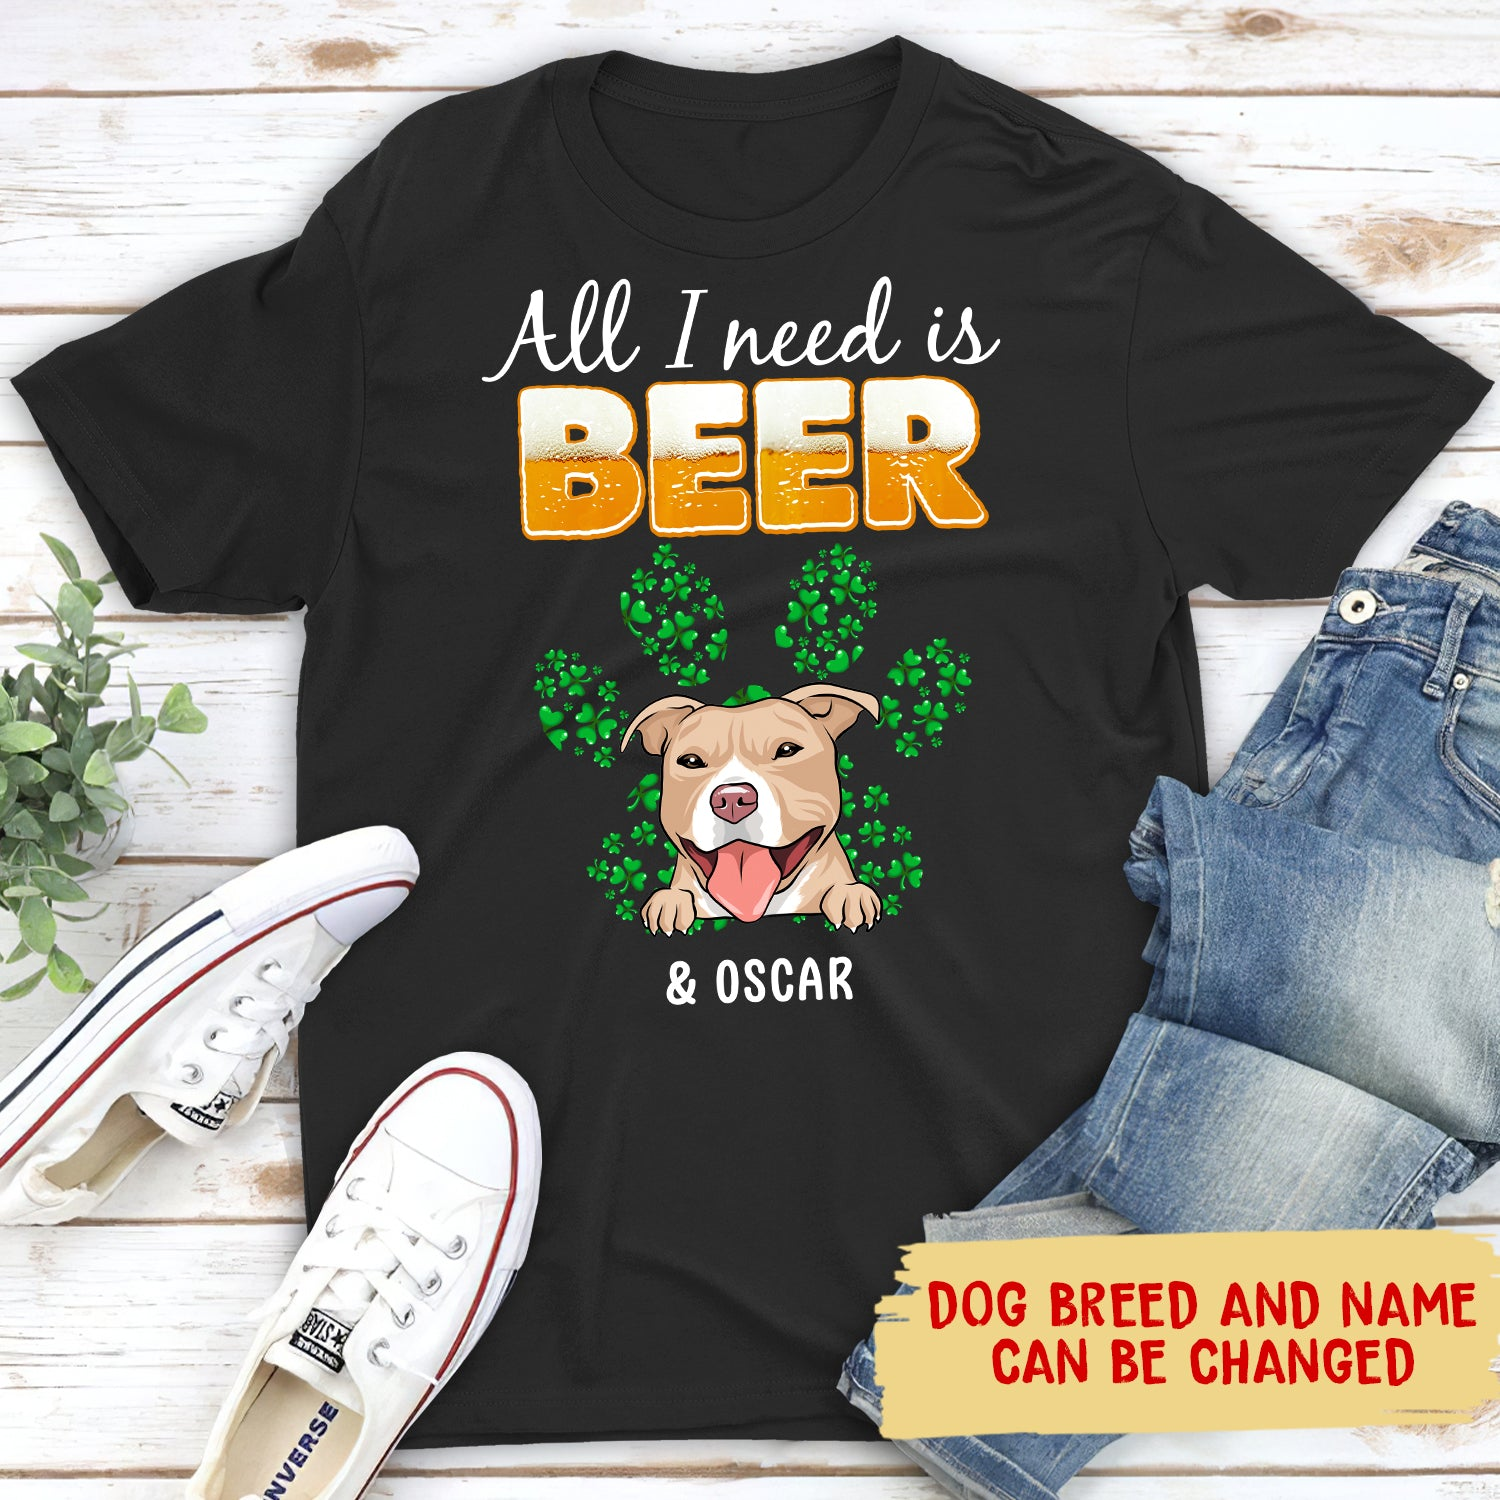 All I need (Beer) - Personalized custom premium T-shirt